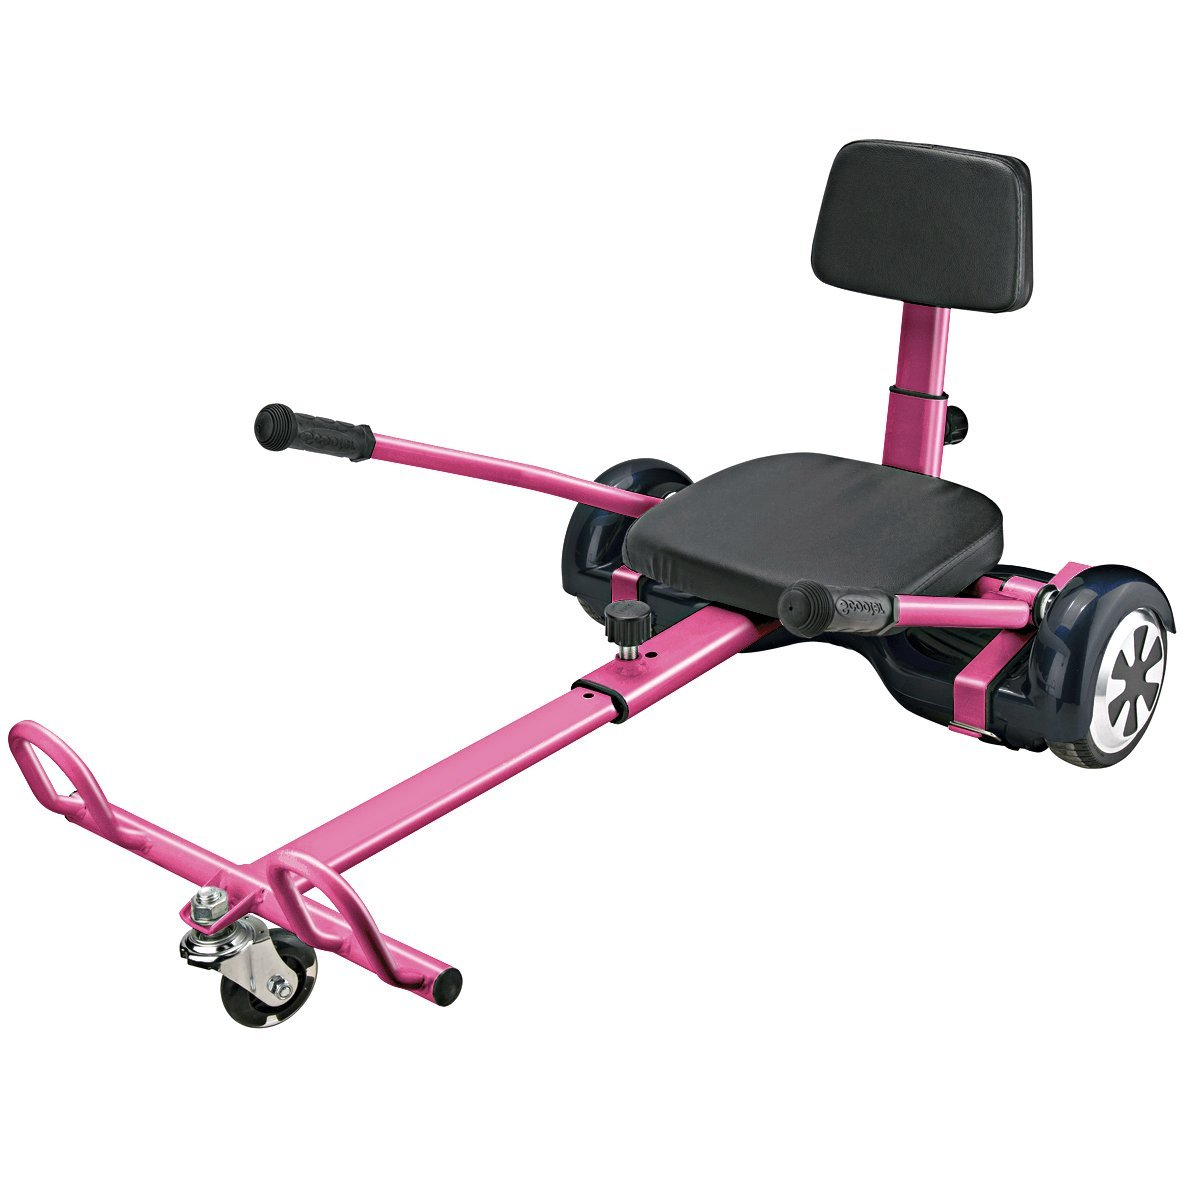 Hover Go Kart for Hoverboards, transform your Hoverboard into Go-Kart, Fully Adjustable fits Kid to Adult, Compatible with all Self Balancing Scooter (not included)